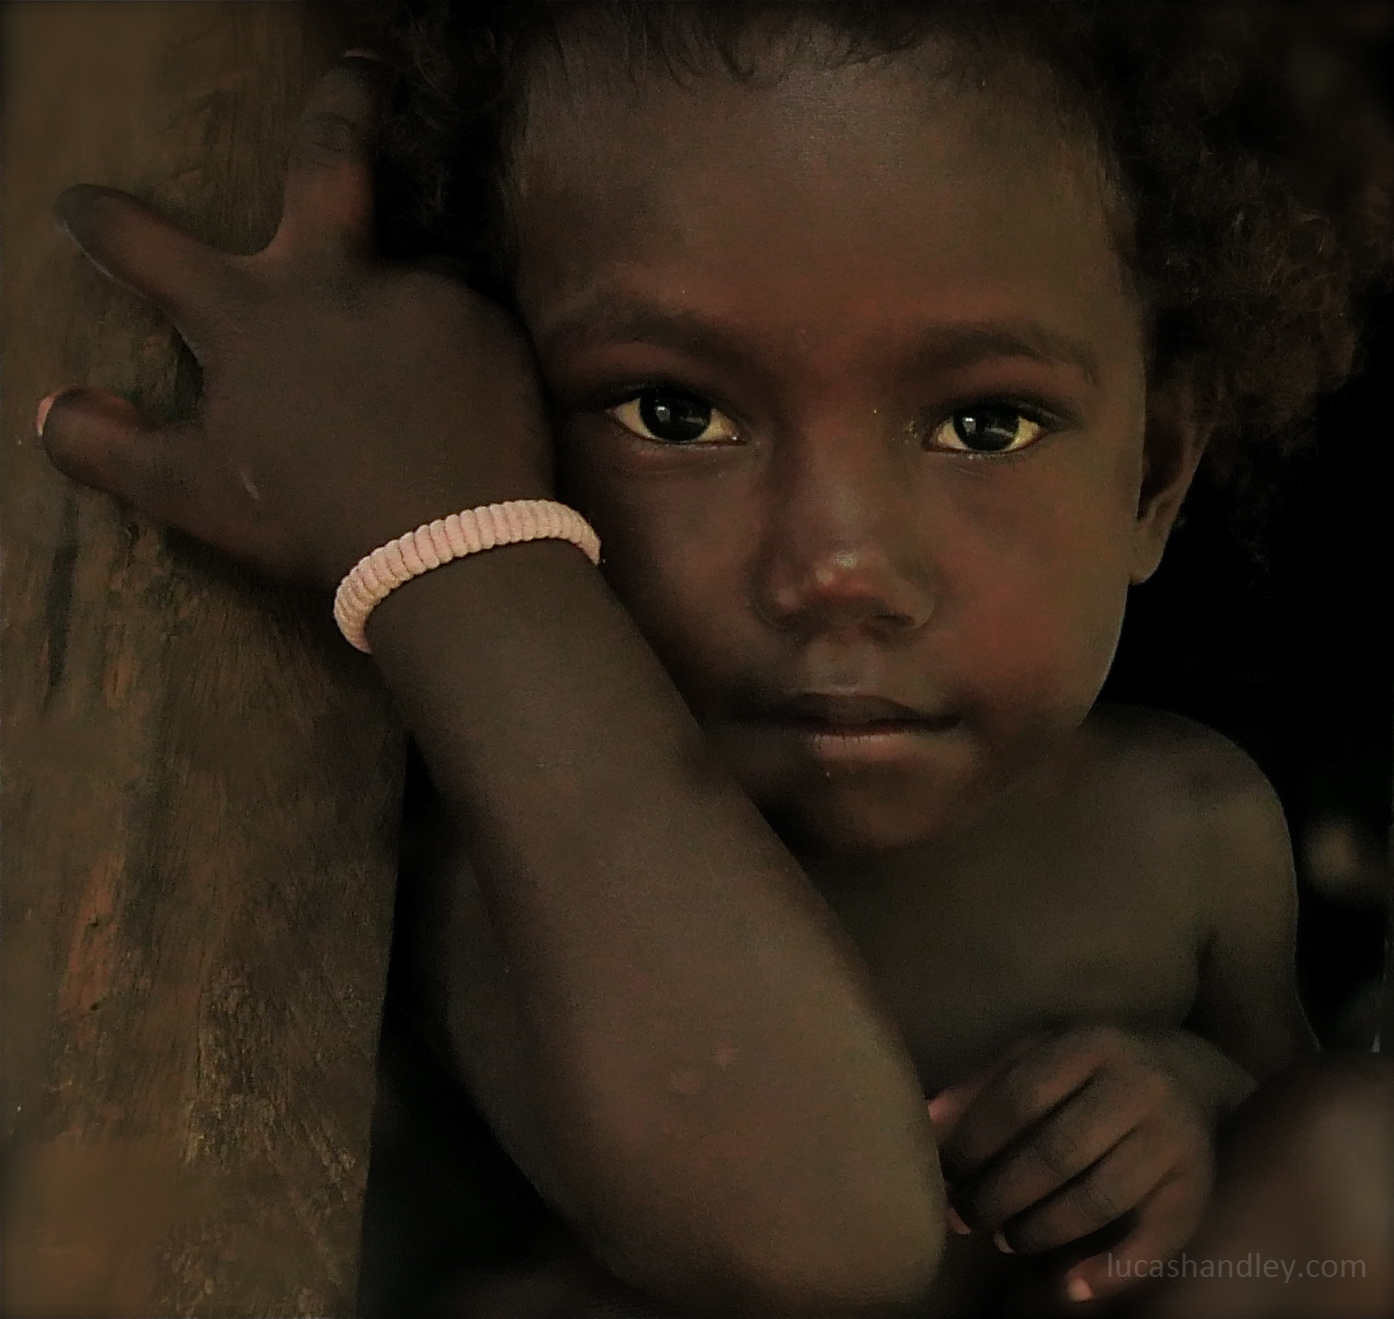 One of the children from the village